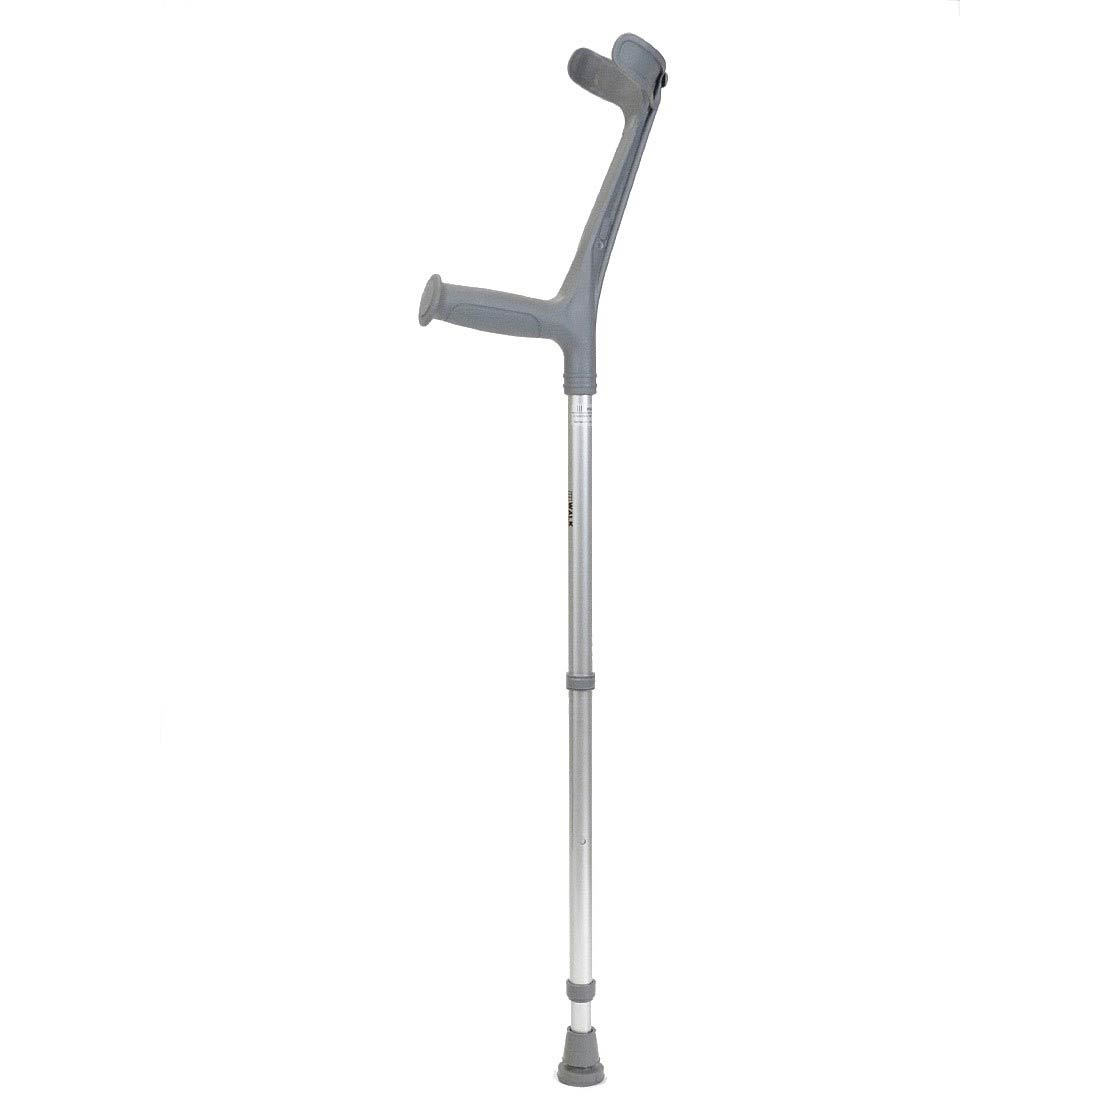 Walk Easy Adult Forearm Crutches With Half Cuffs (Pair)